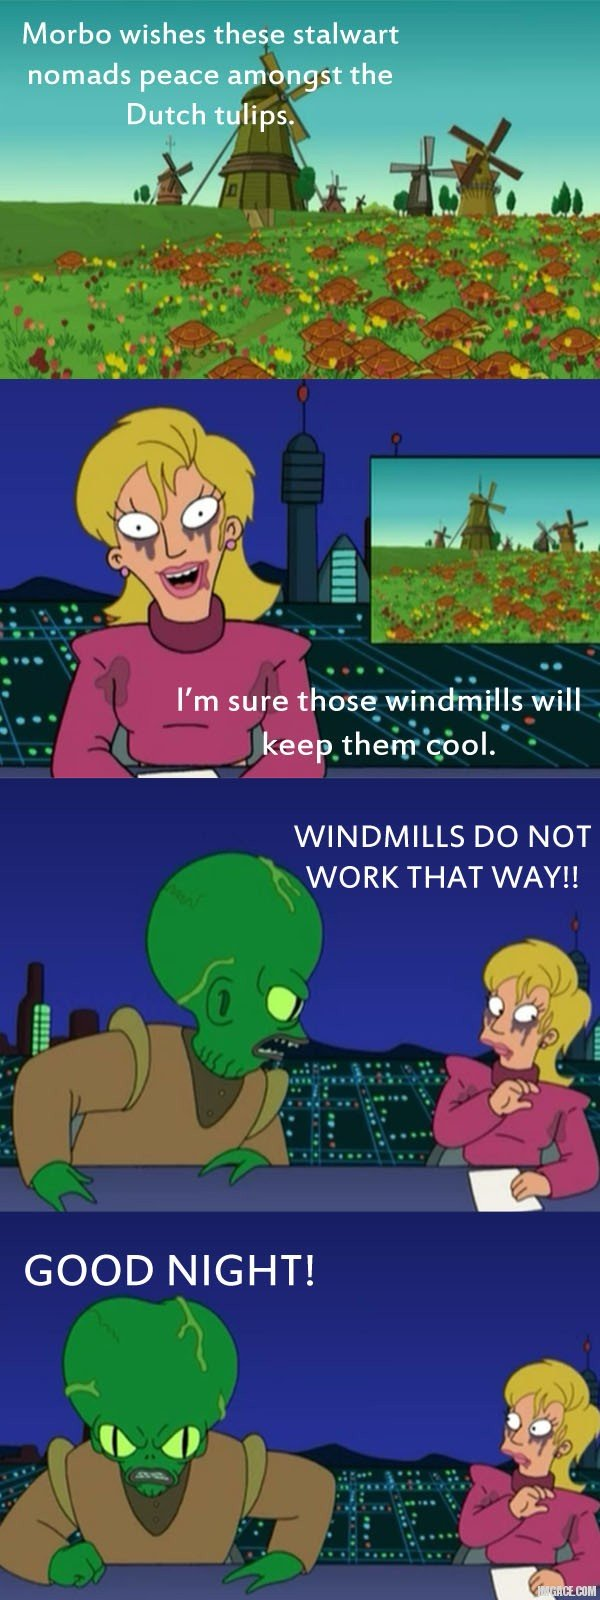 WINDMILLS DO NOT WORK THAT WAY